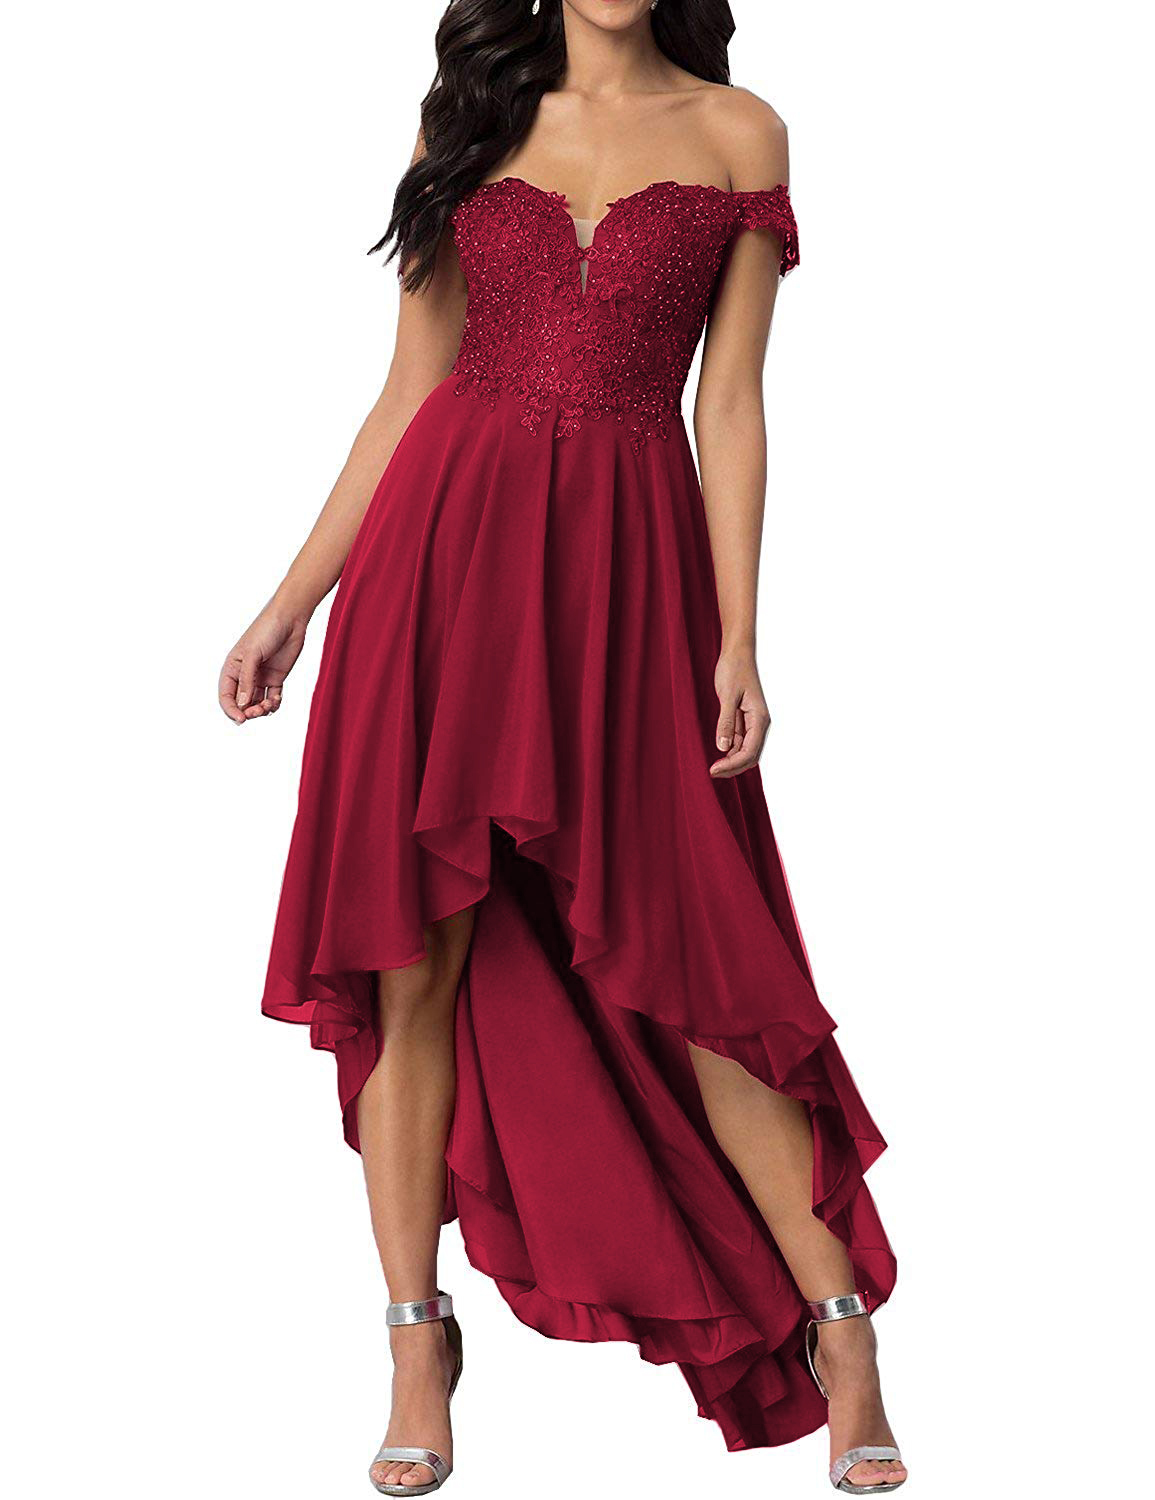 Simple A Line High Low Cocktail Dresses Chiffon Summer Party Gown Lace Appliques Burgundy Homecoming Dress